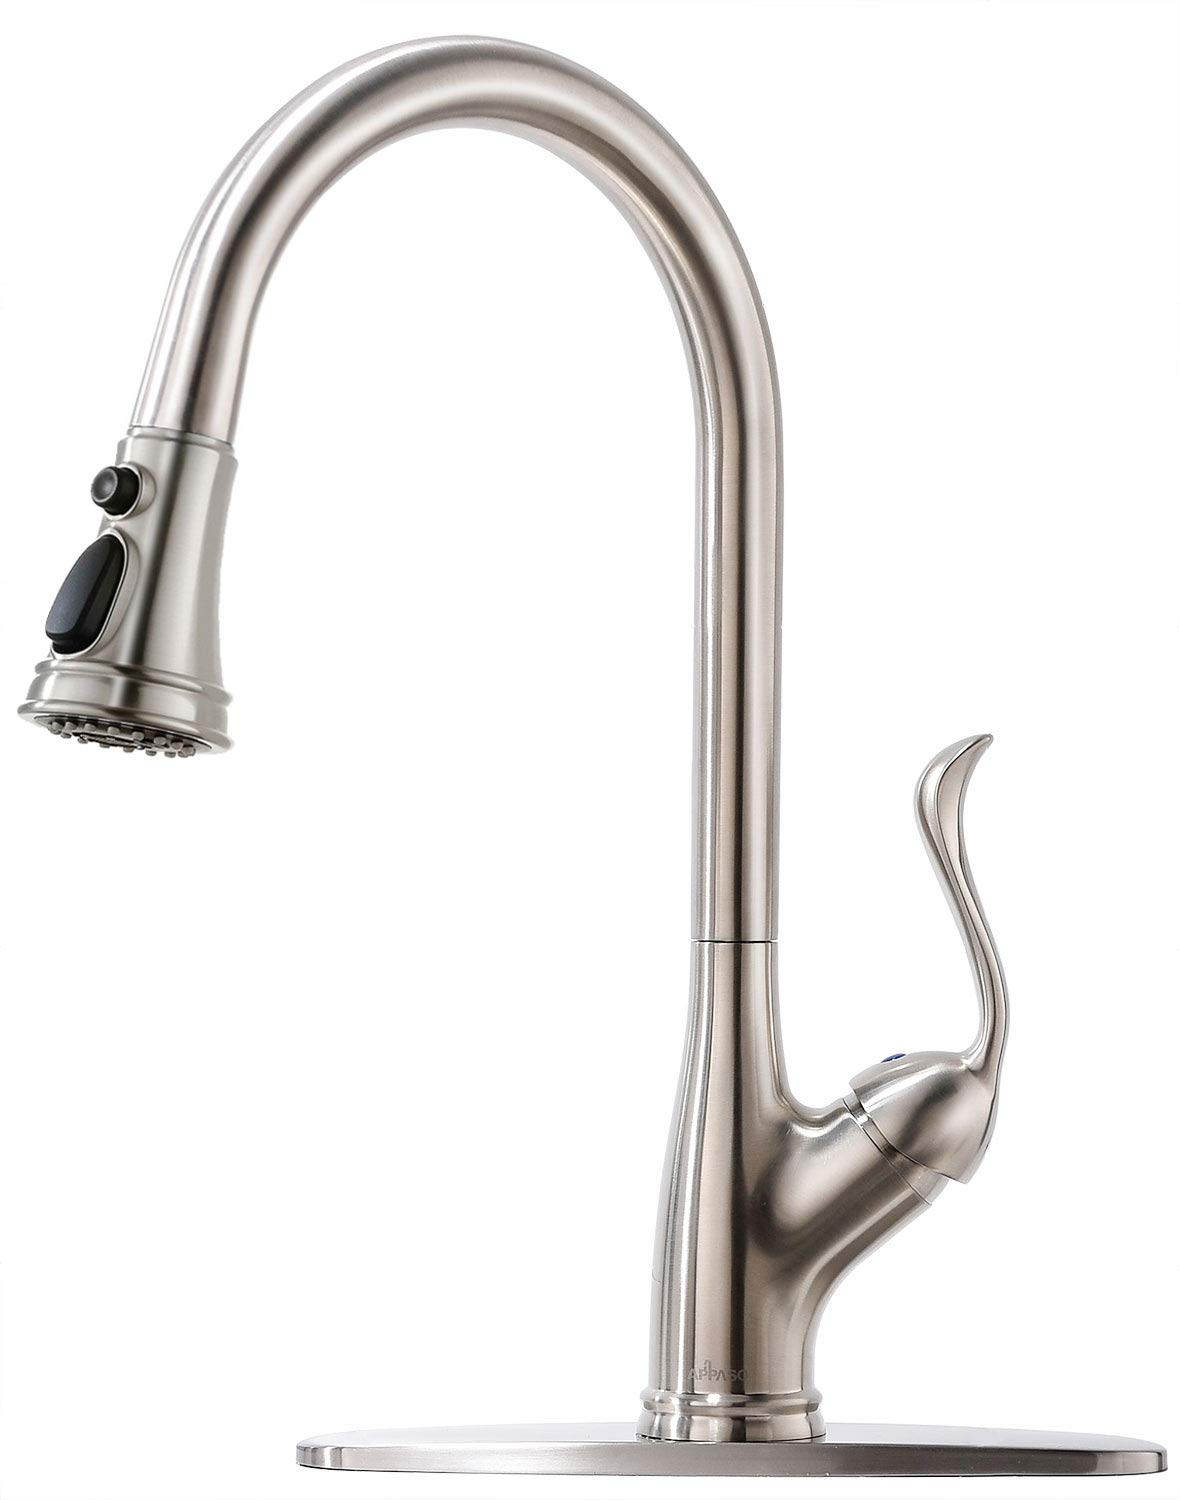 APPASO Single Handle Pull Down Kitchen Faucet with Sprayer, Stainless Steel Brushed Nickel High Arc Single Hole Pull Out Spray Head Kitchen Sink Faucet with Escutcheon by APPASO